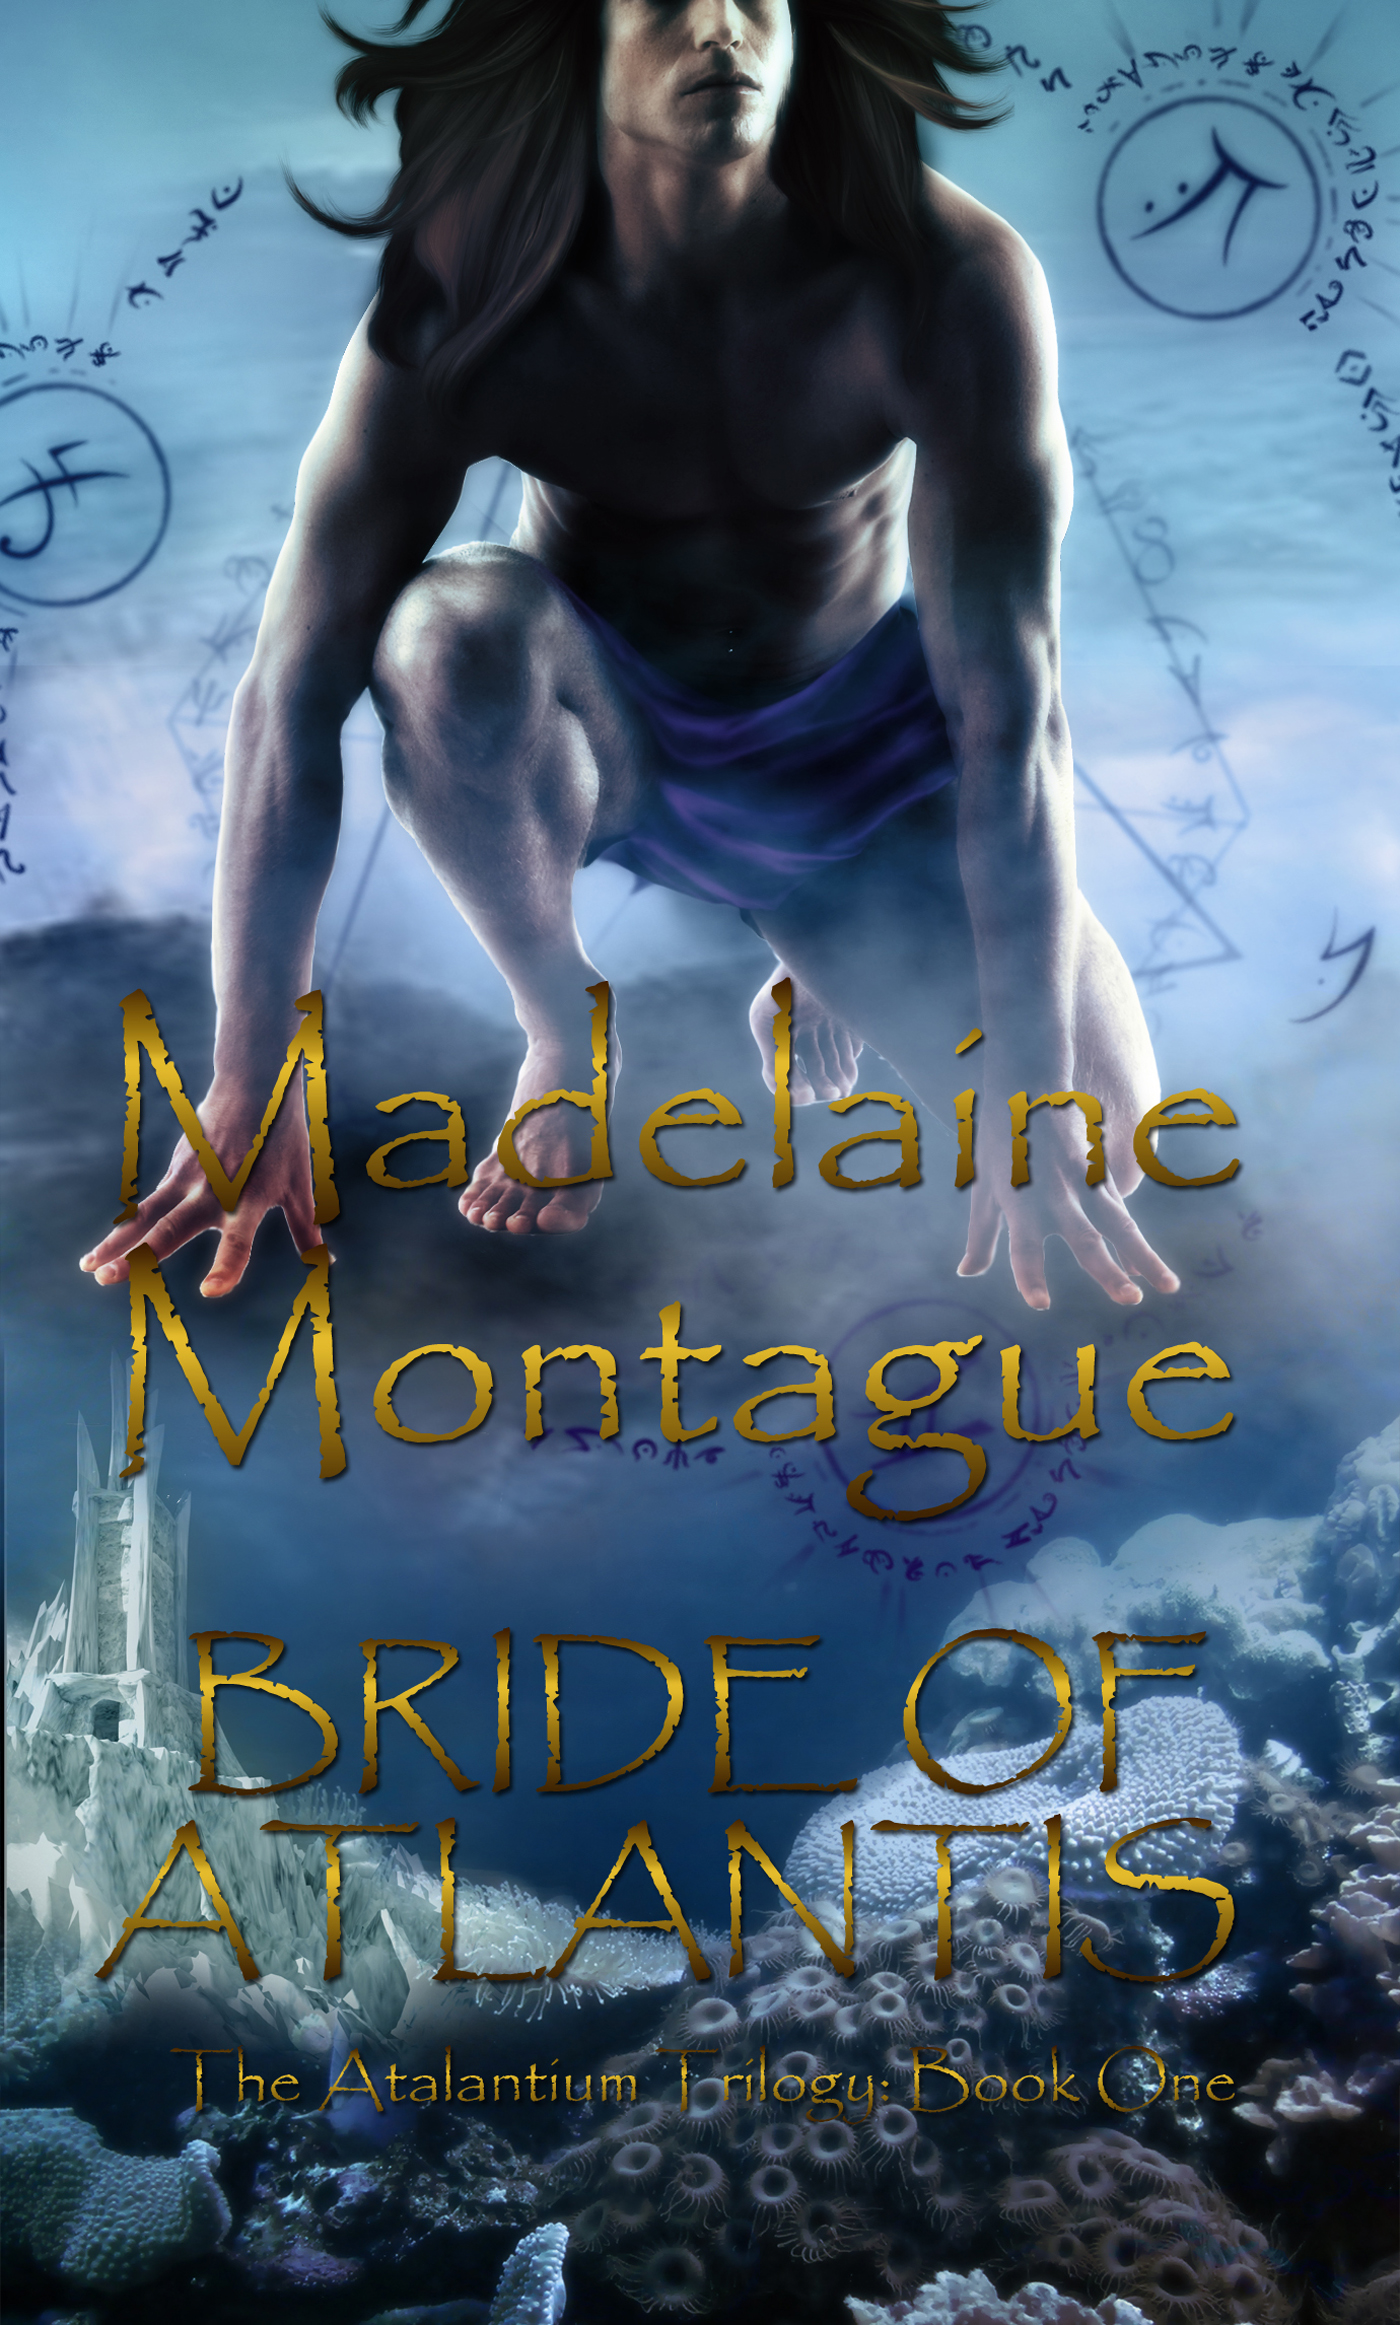 Madelaine Montague - The Atlantium Trilogy I: Bride of Atlantis